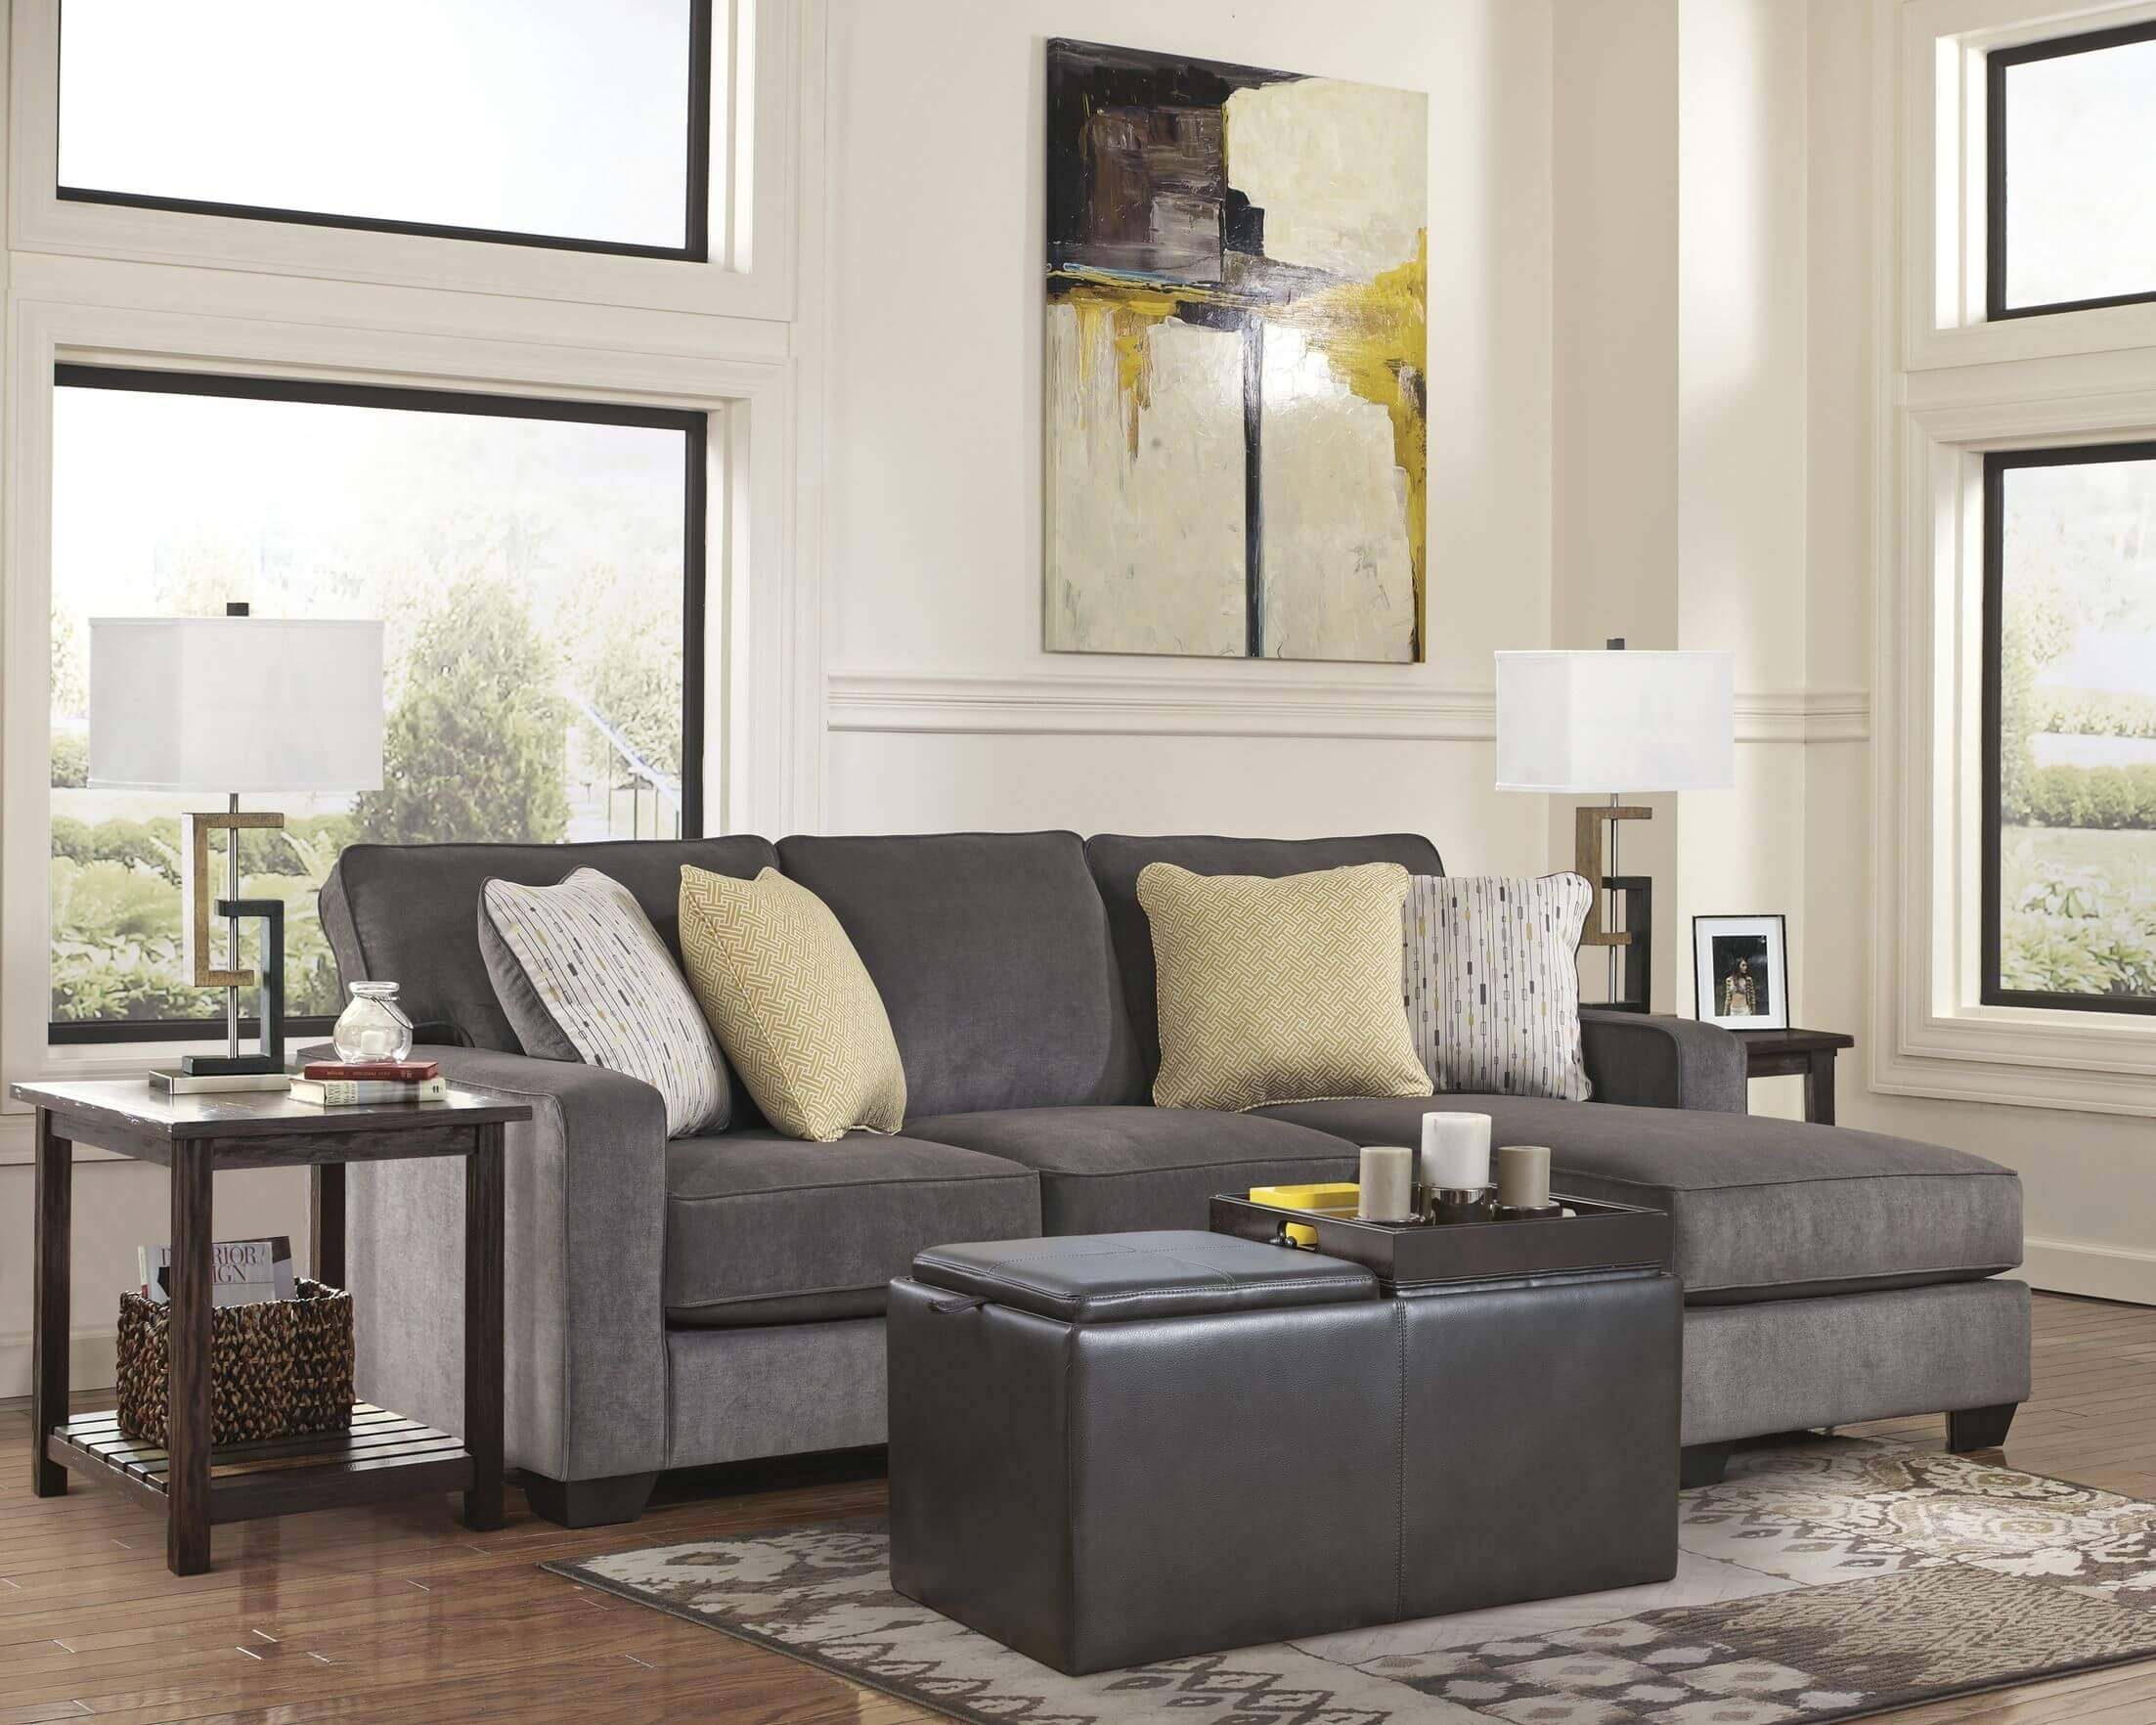 45 Contemporary Living Rooms With Sectional Sofas (Pictures) within Decorating With A Sectional Sofa (Image 6 of 30)